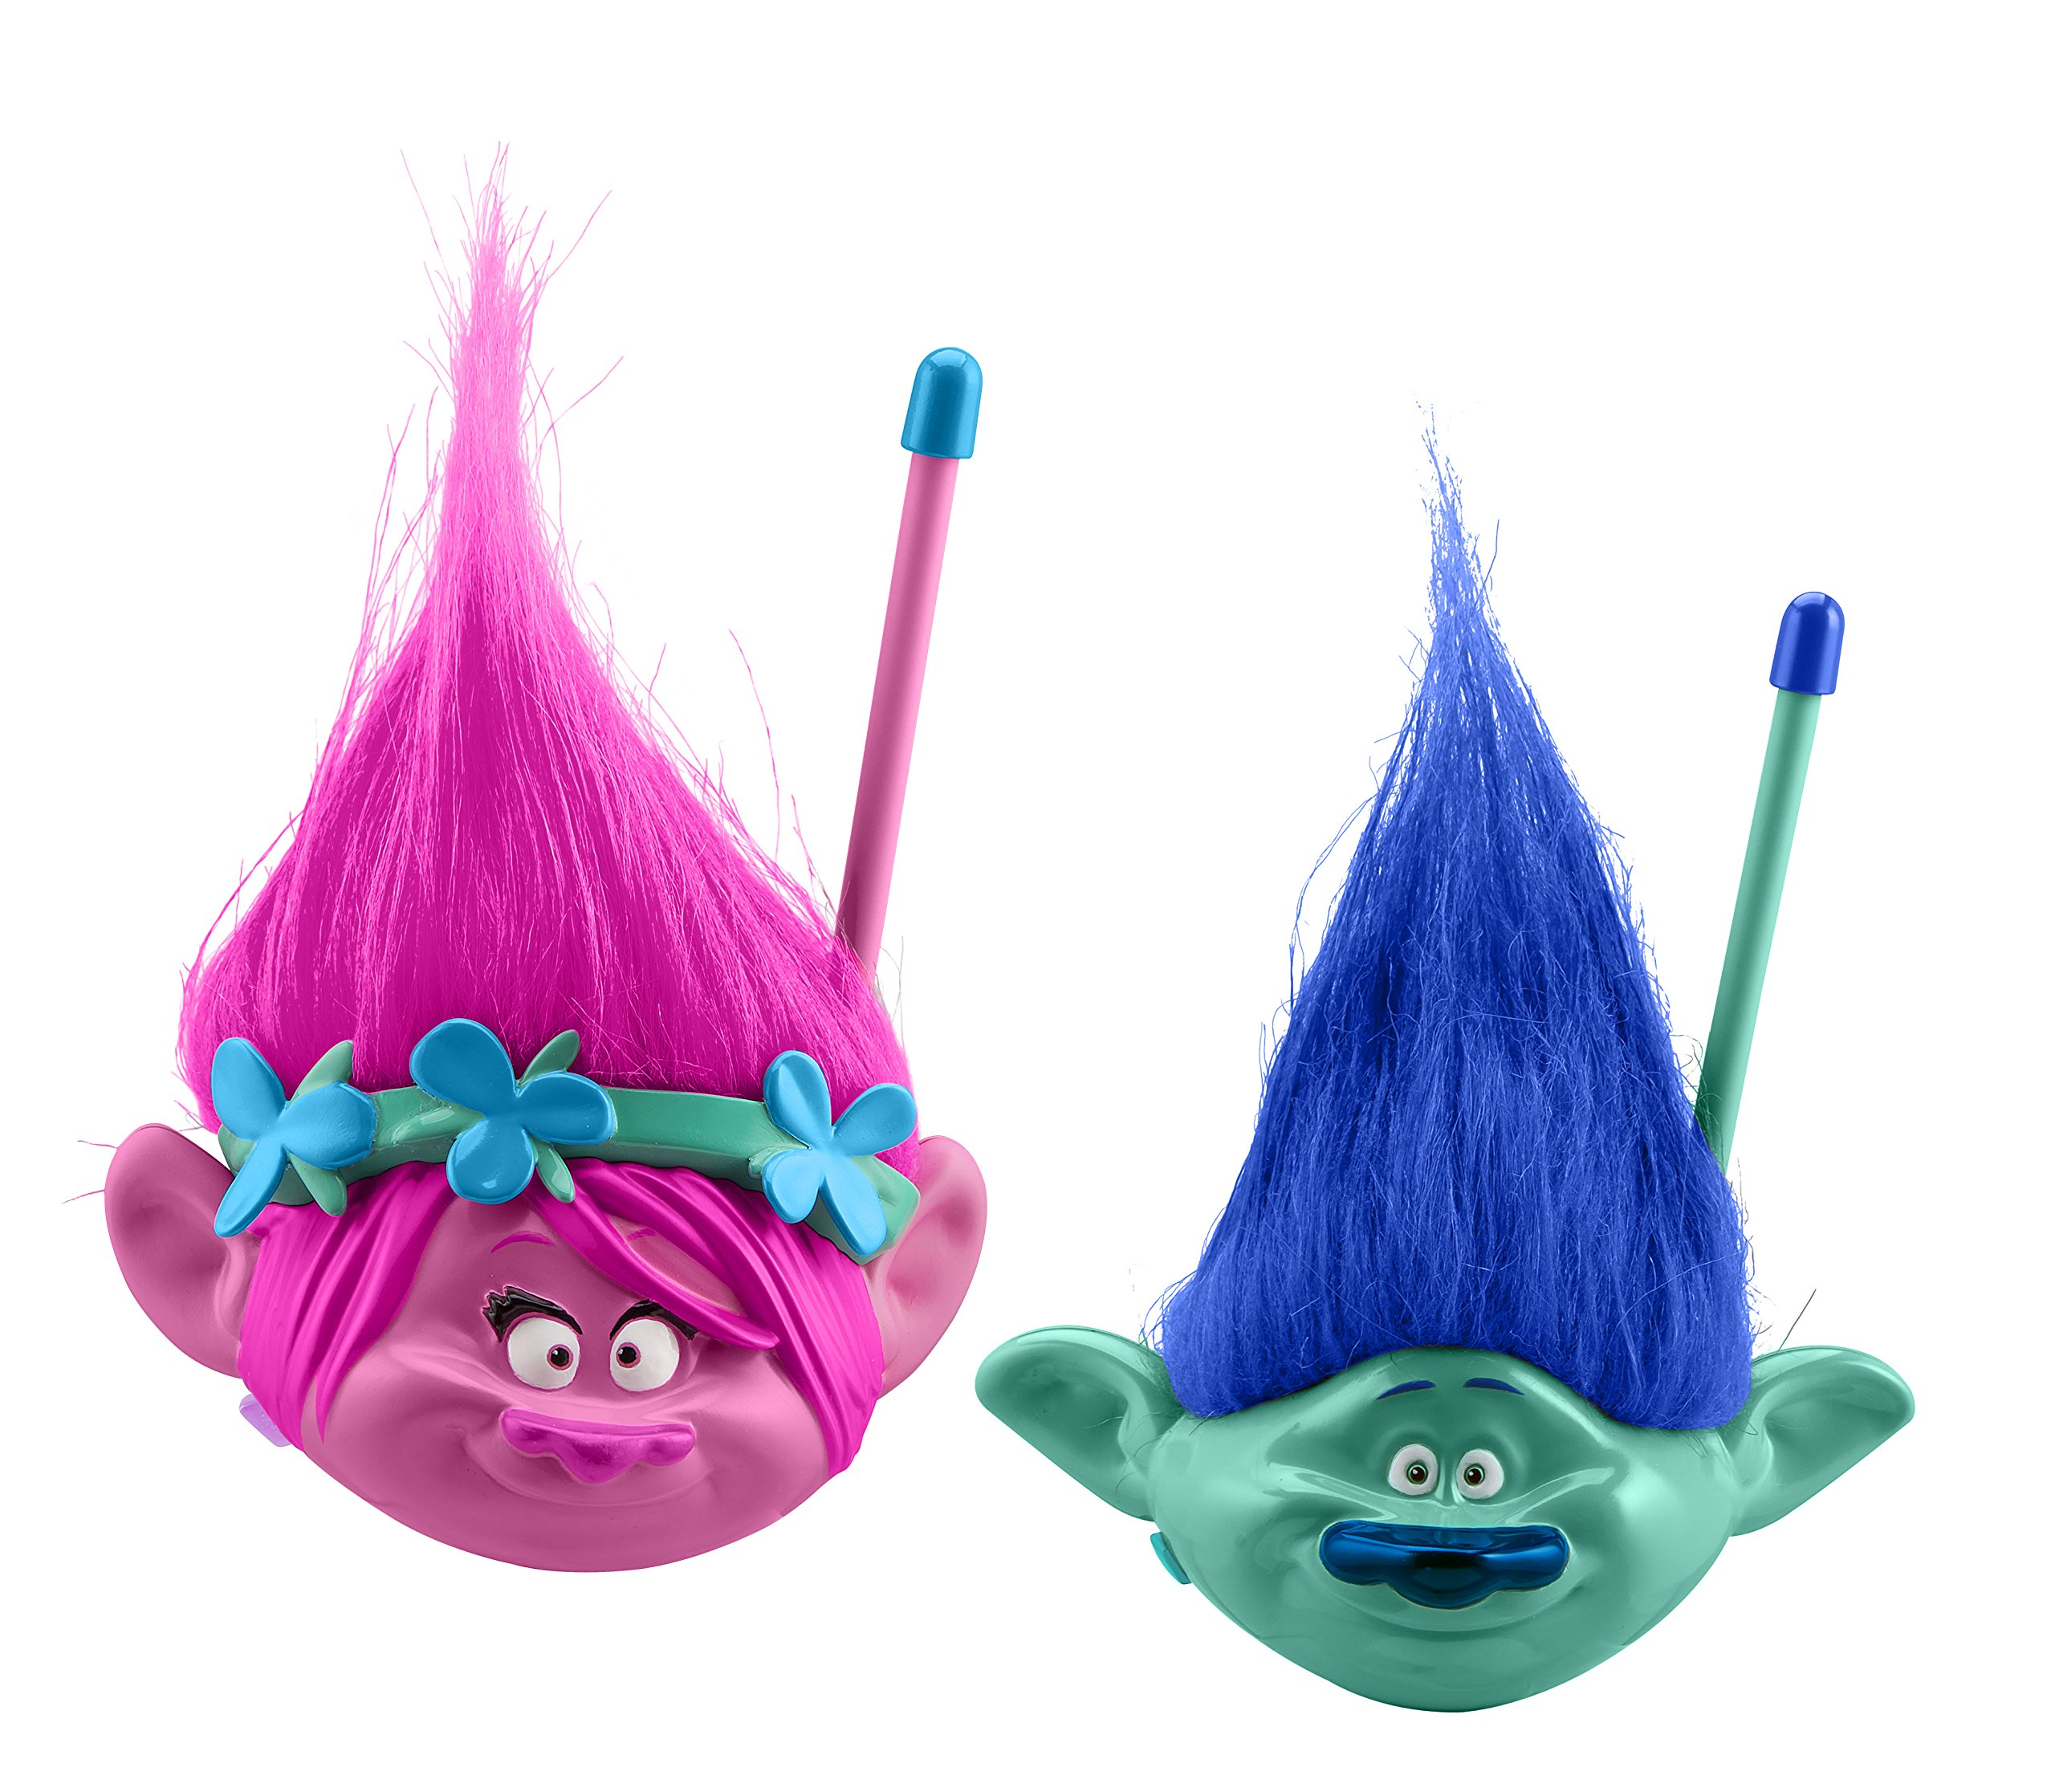 Trolls Walkie Talkies for Kids Static Free Extended Range Kid Friendly Easy to Use 2 Way Walkie Talkies